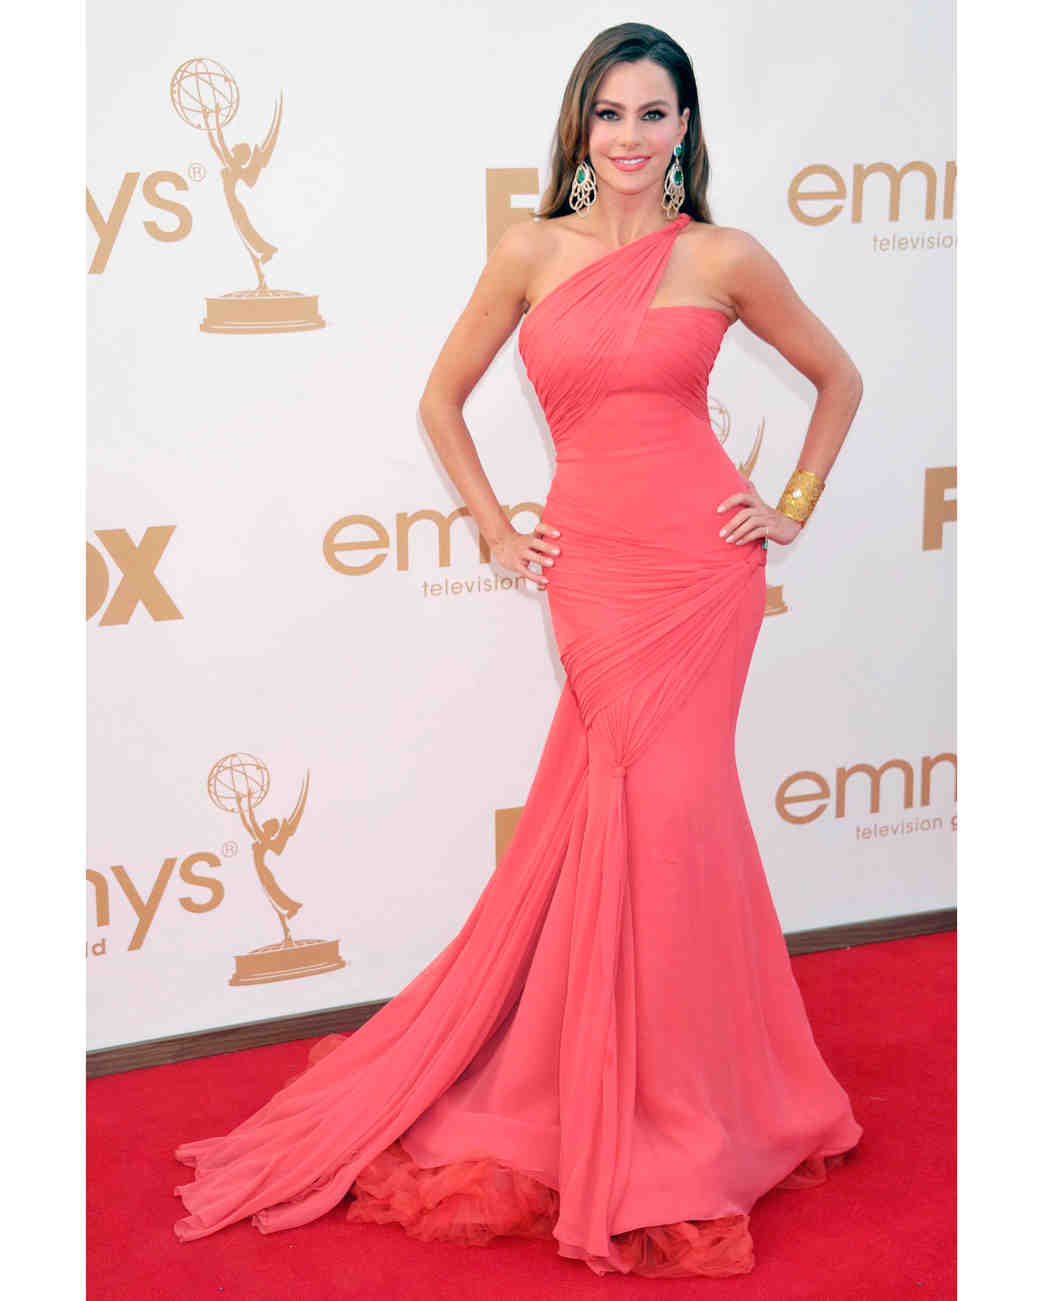 sofia-vergara-red-carpet-emmys-vera-wang-coral-0815.jpg